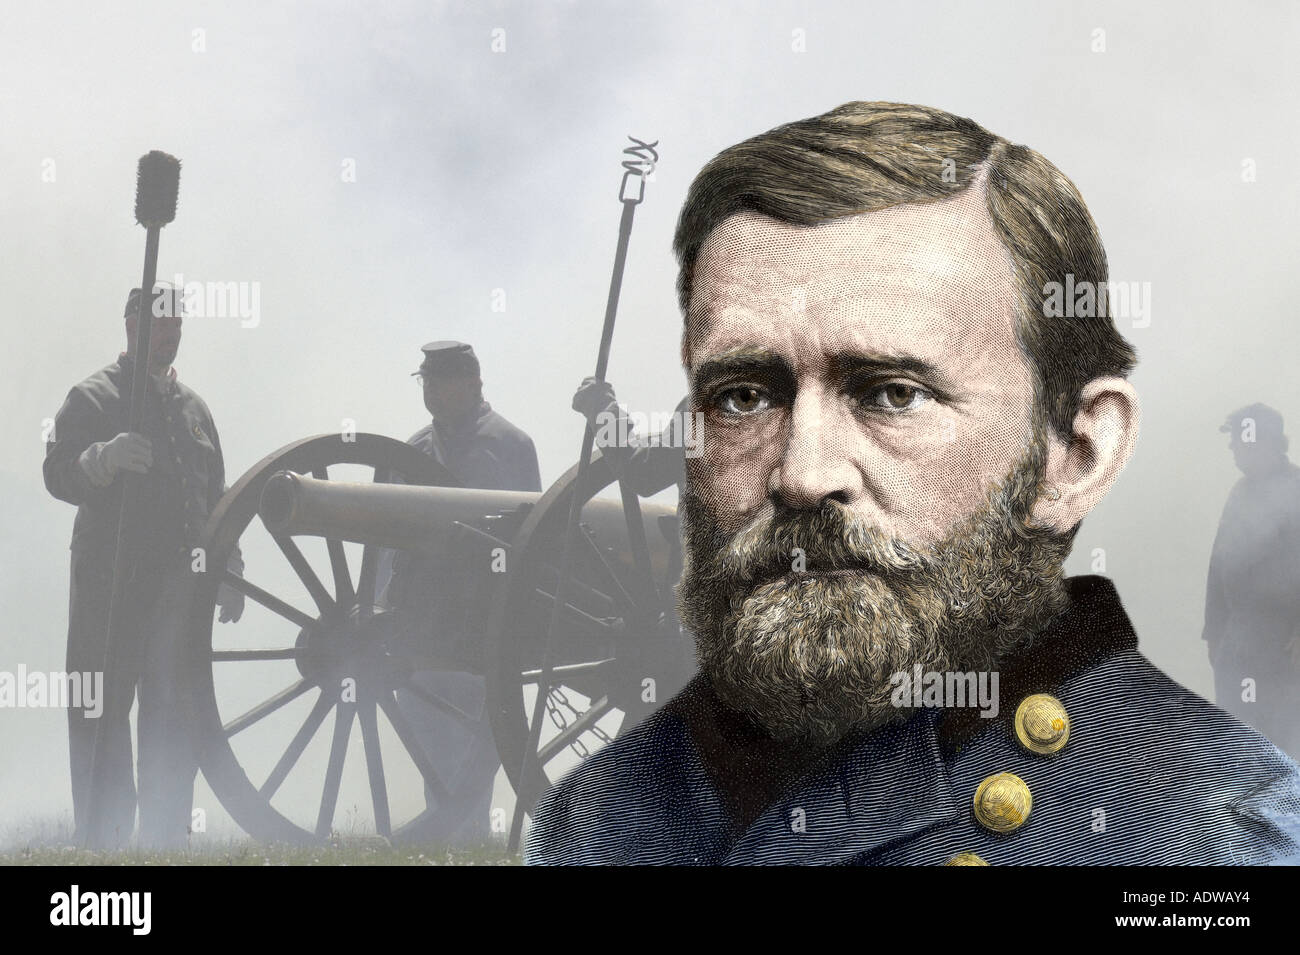 General Ulysses S Grant portrait with artillery reenactors at Shiloh Battlefield in Tennessee. Hand-colored woodcut combined with a photograph - Stock Image